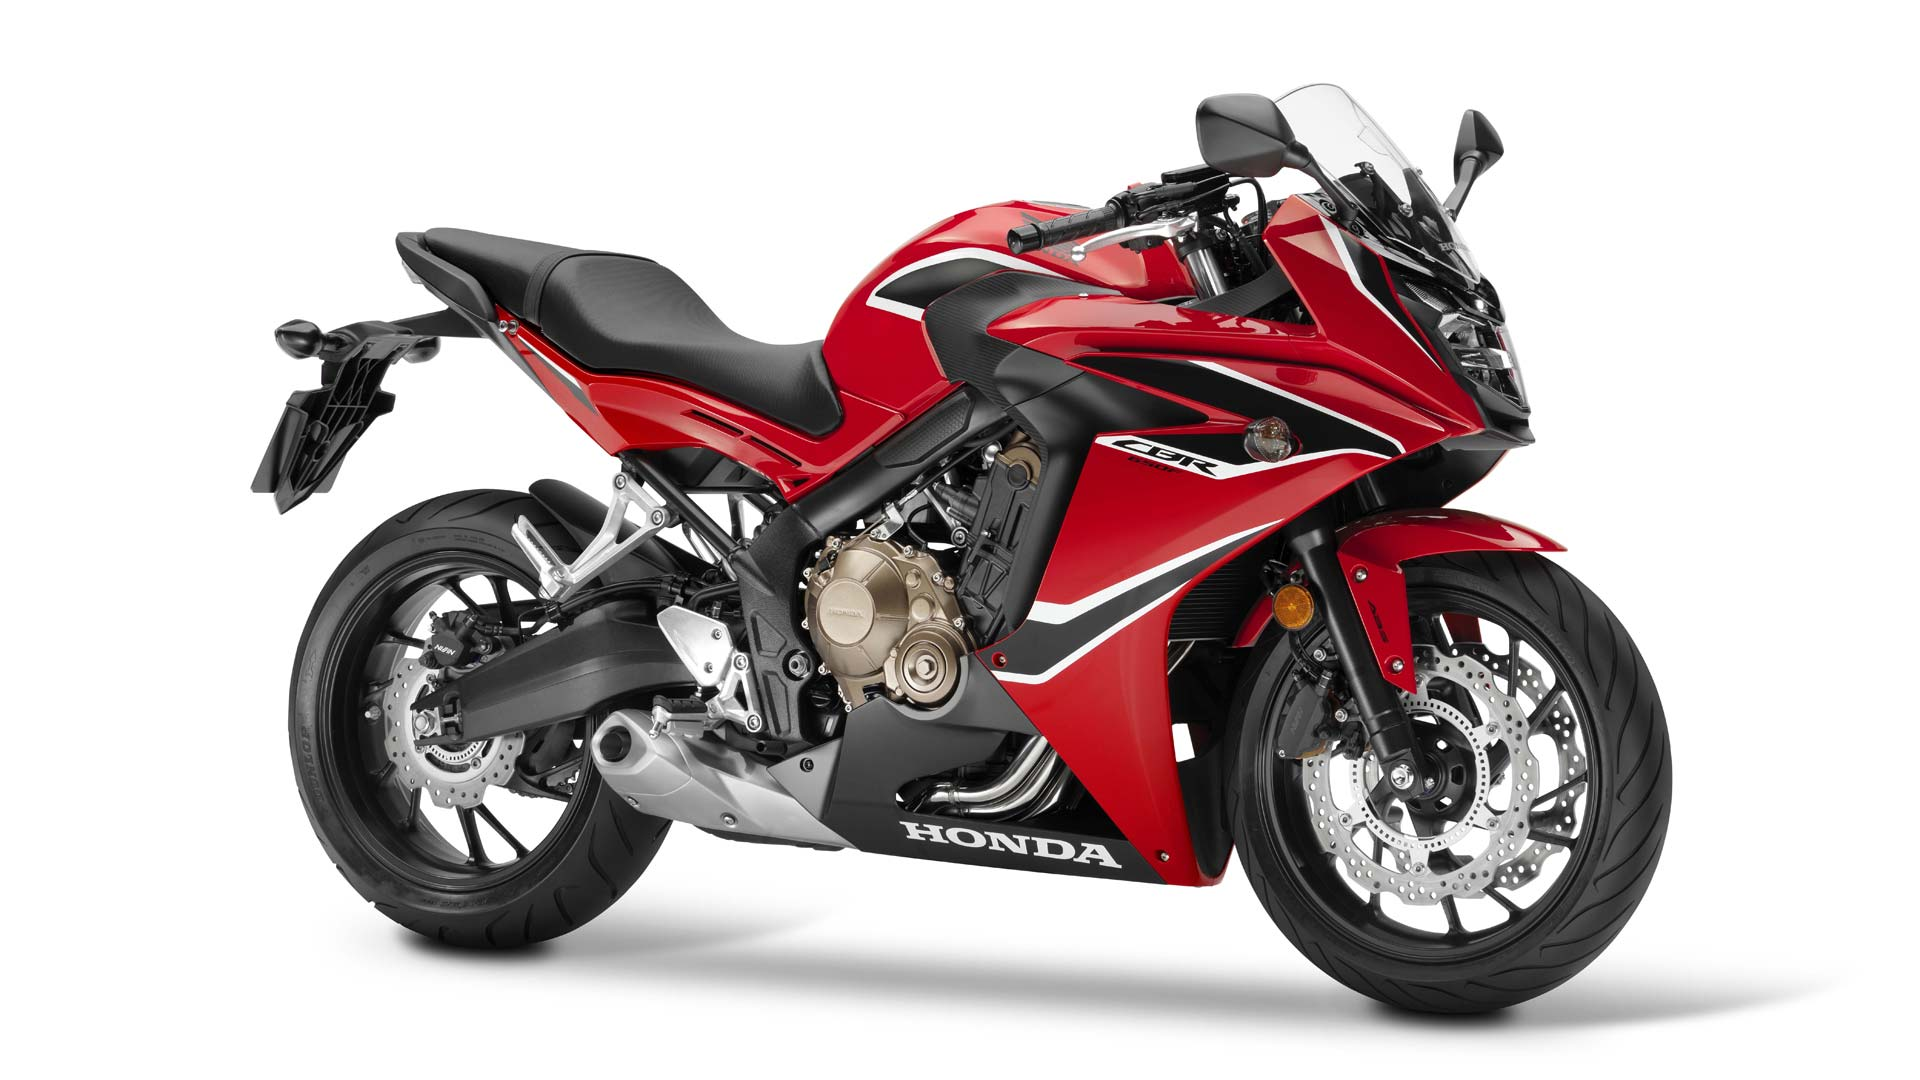 Honda Cbr1000rr Review >> 2018 Honda Cbr650f Price | 2017/2018/2019 Honda Reviews